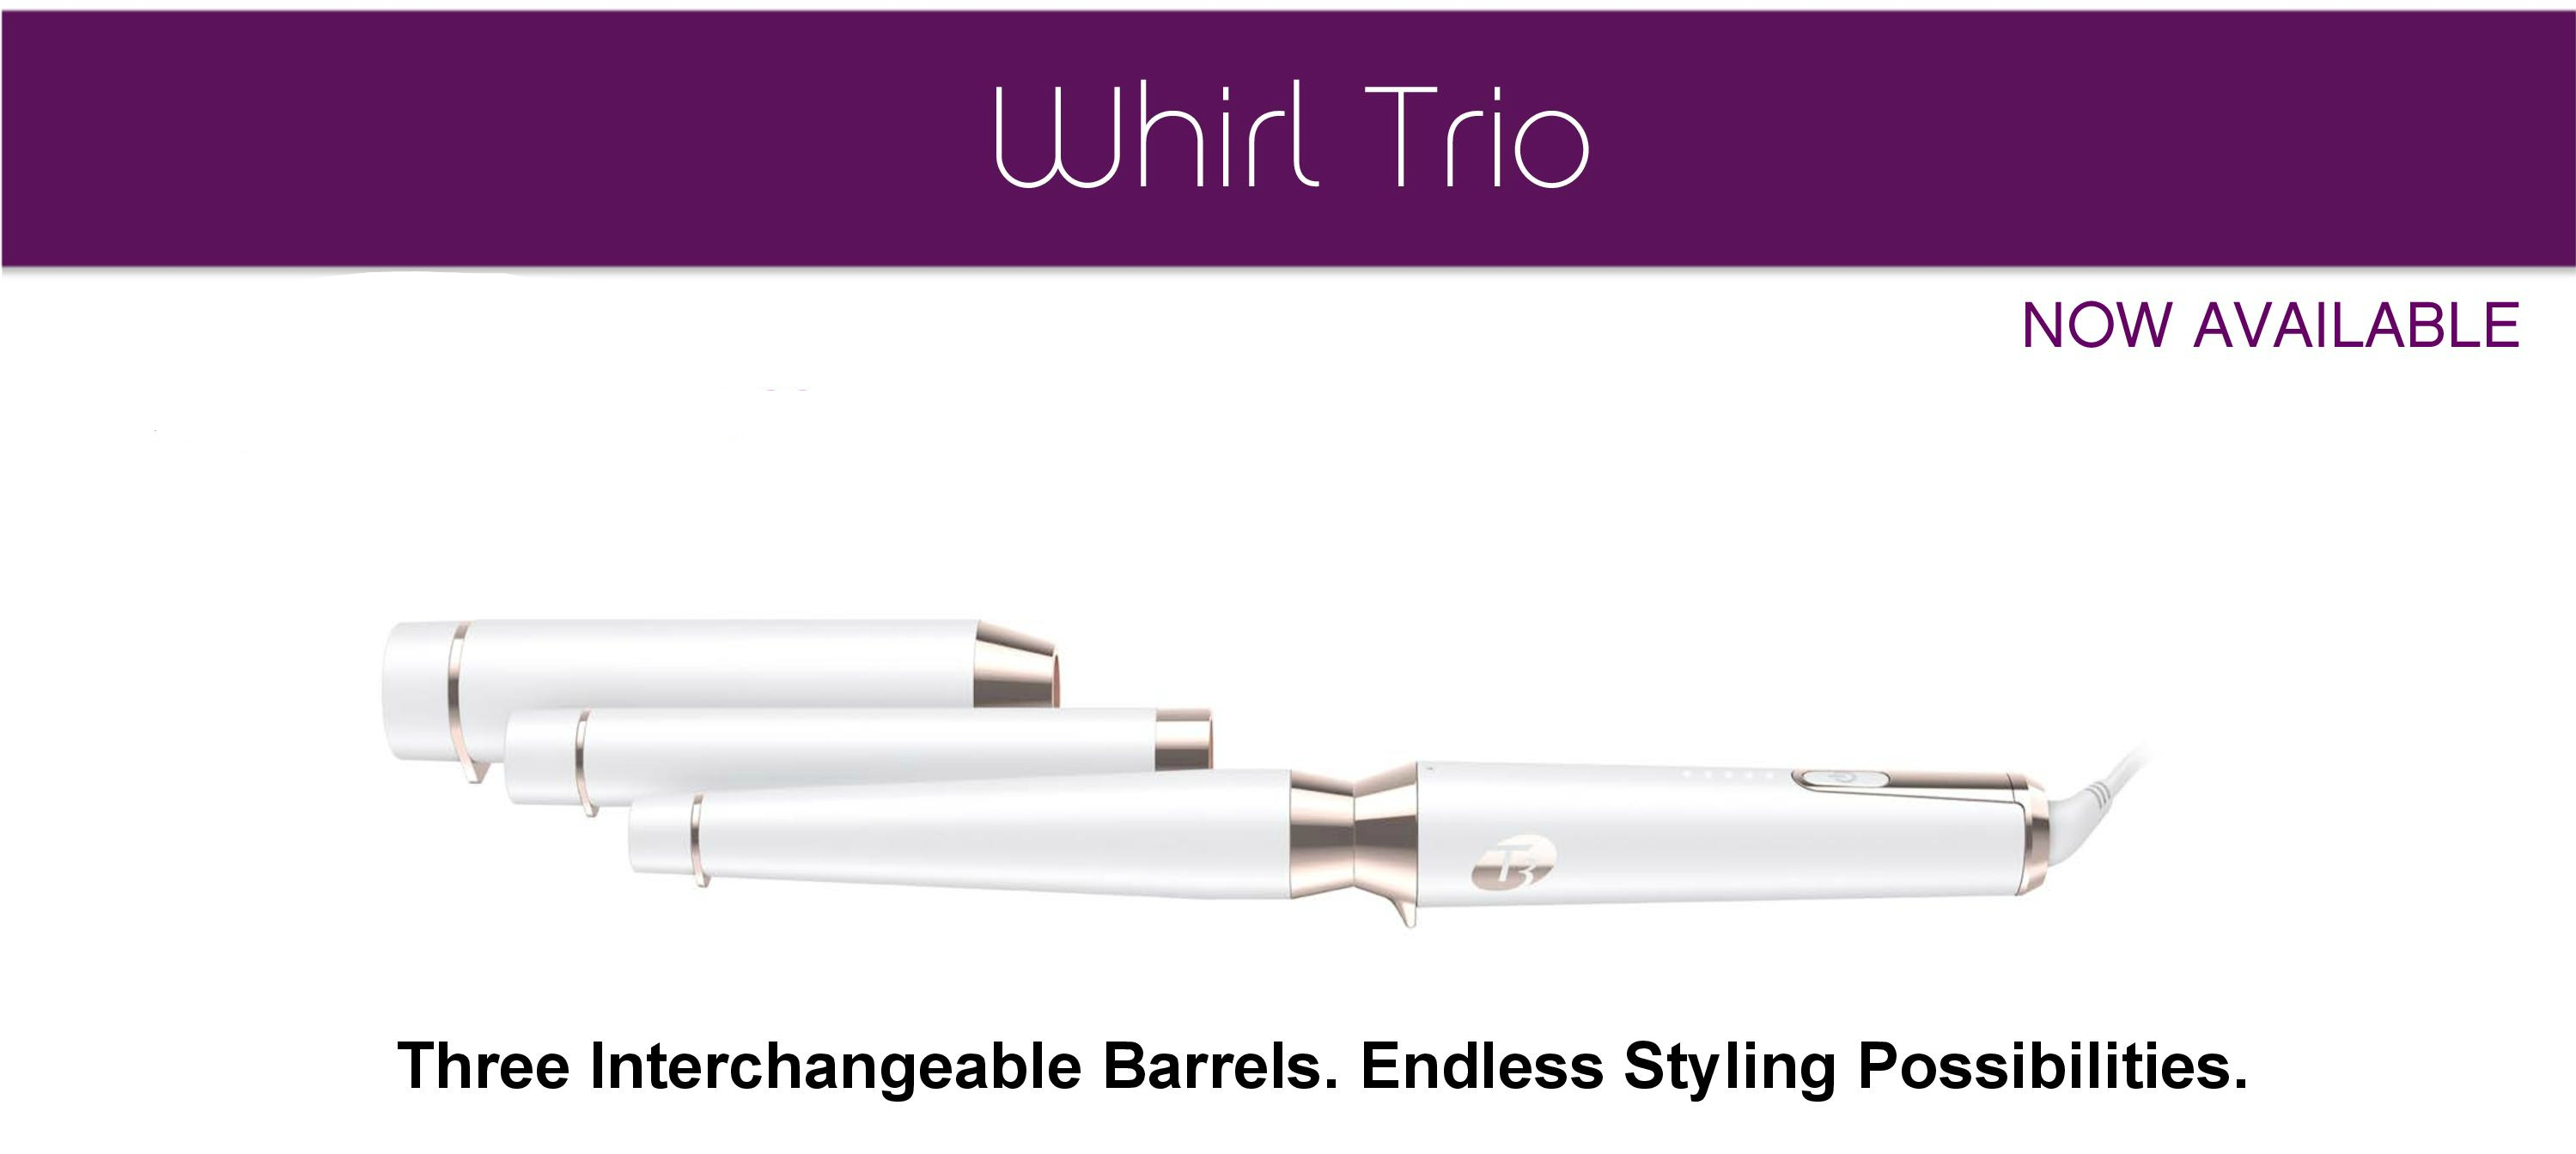 T3 Professional Grade Styling Iron with 3 Interchangeable Barrels!